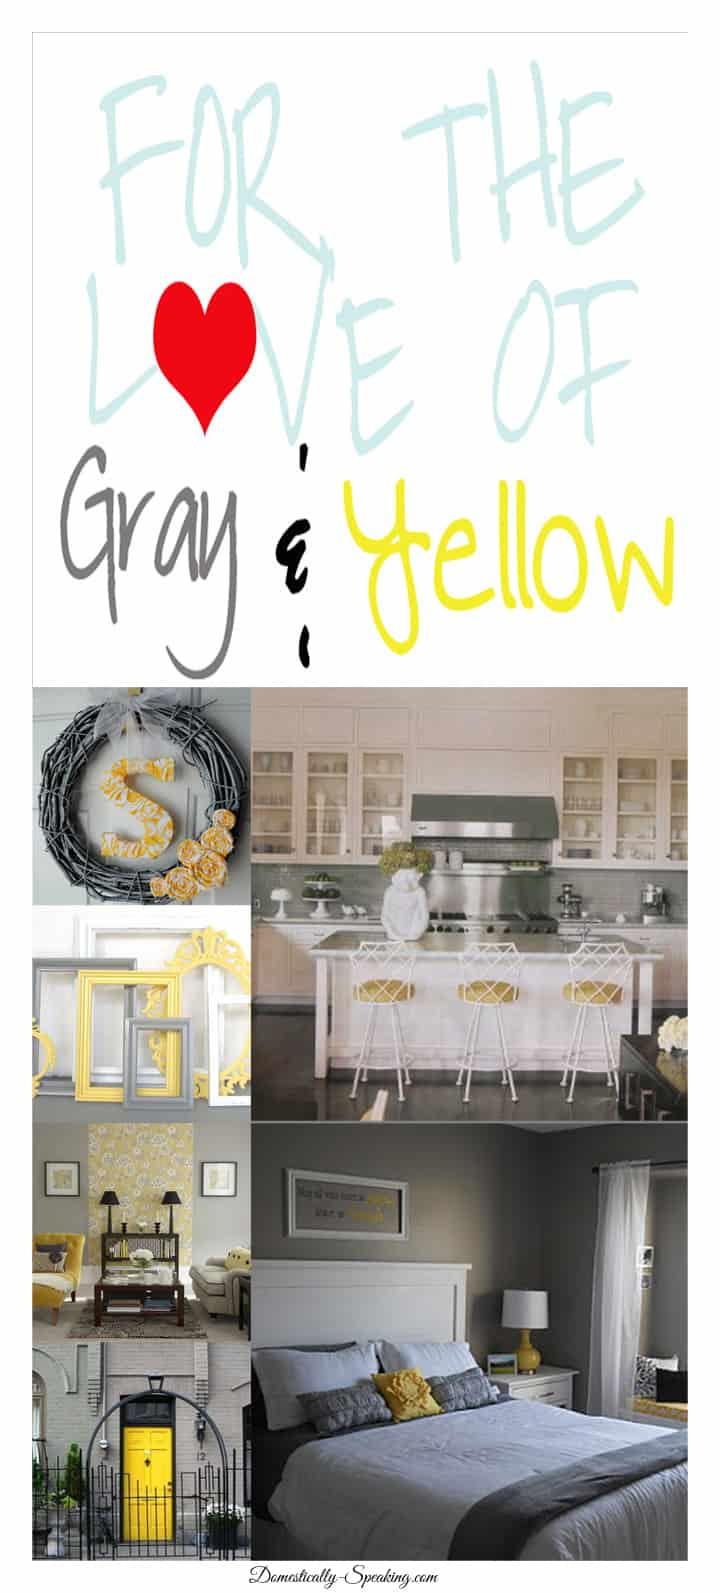 For the Love of Gray and Yellow